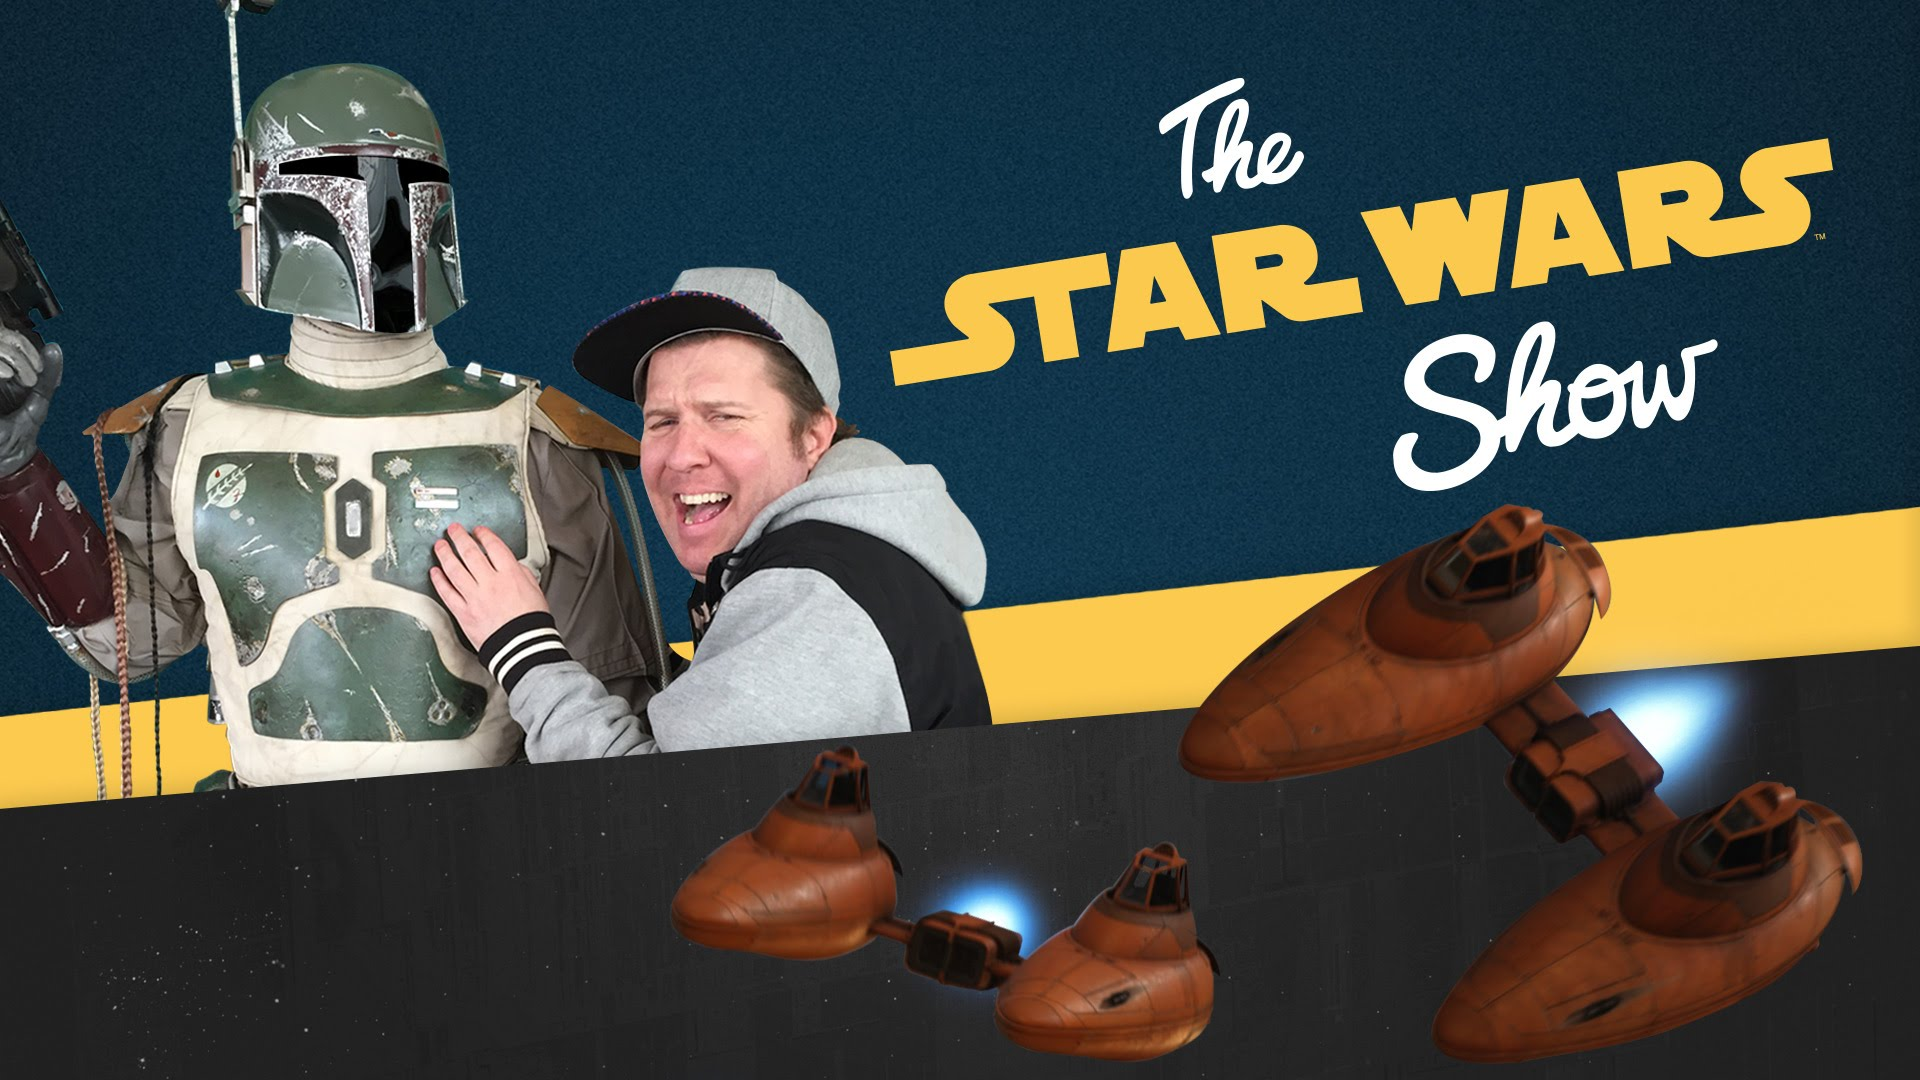 New Star Wars Video Games, Han Solo #1 Preview, and Nick Swardson | The Star Wars Show